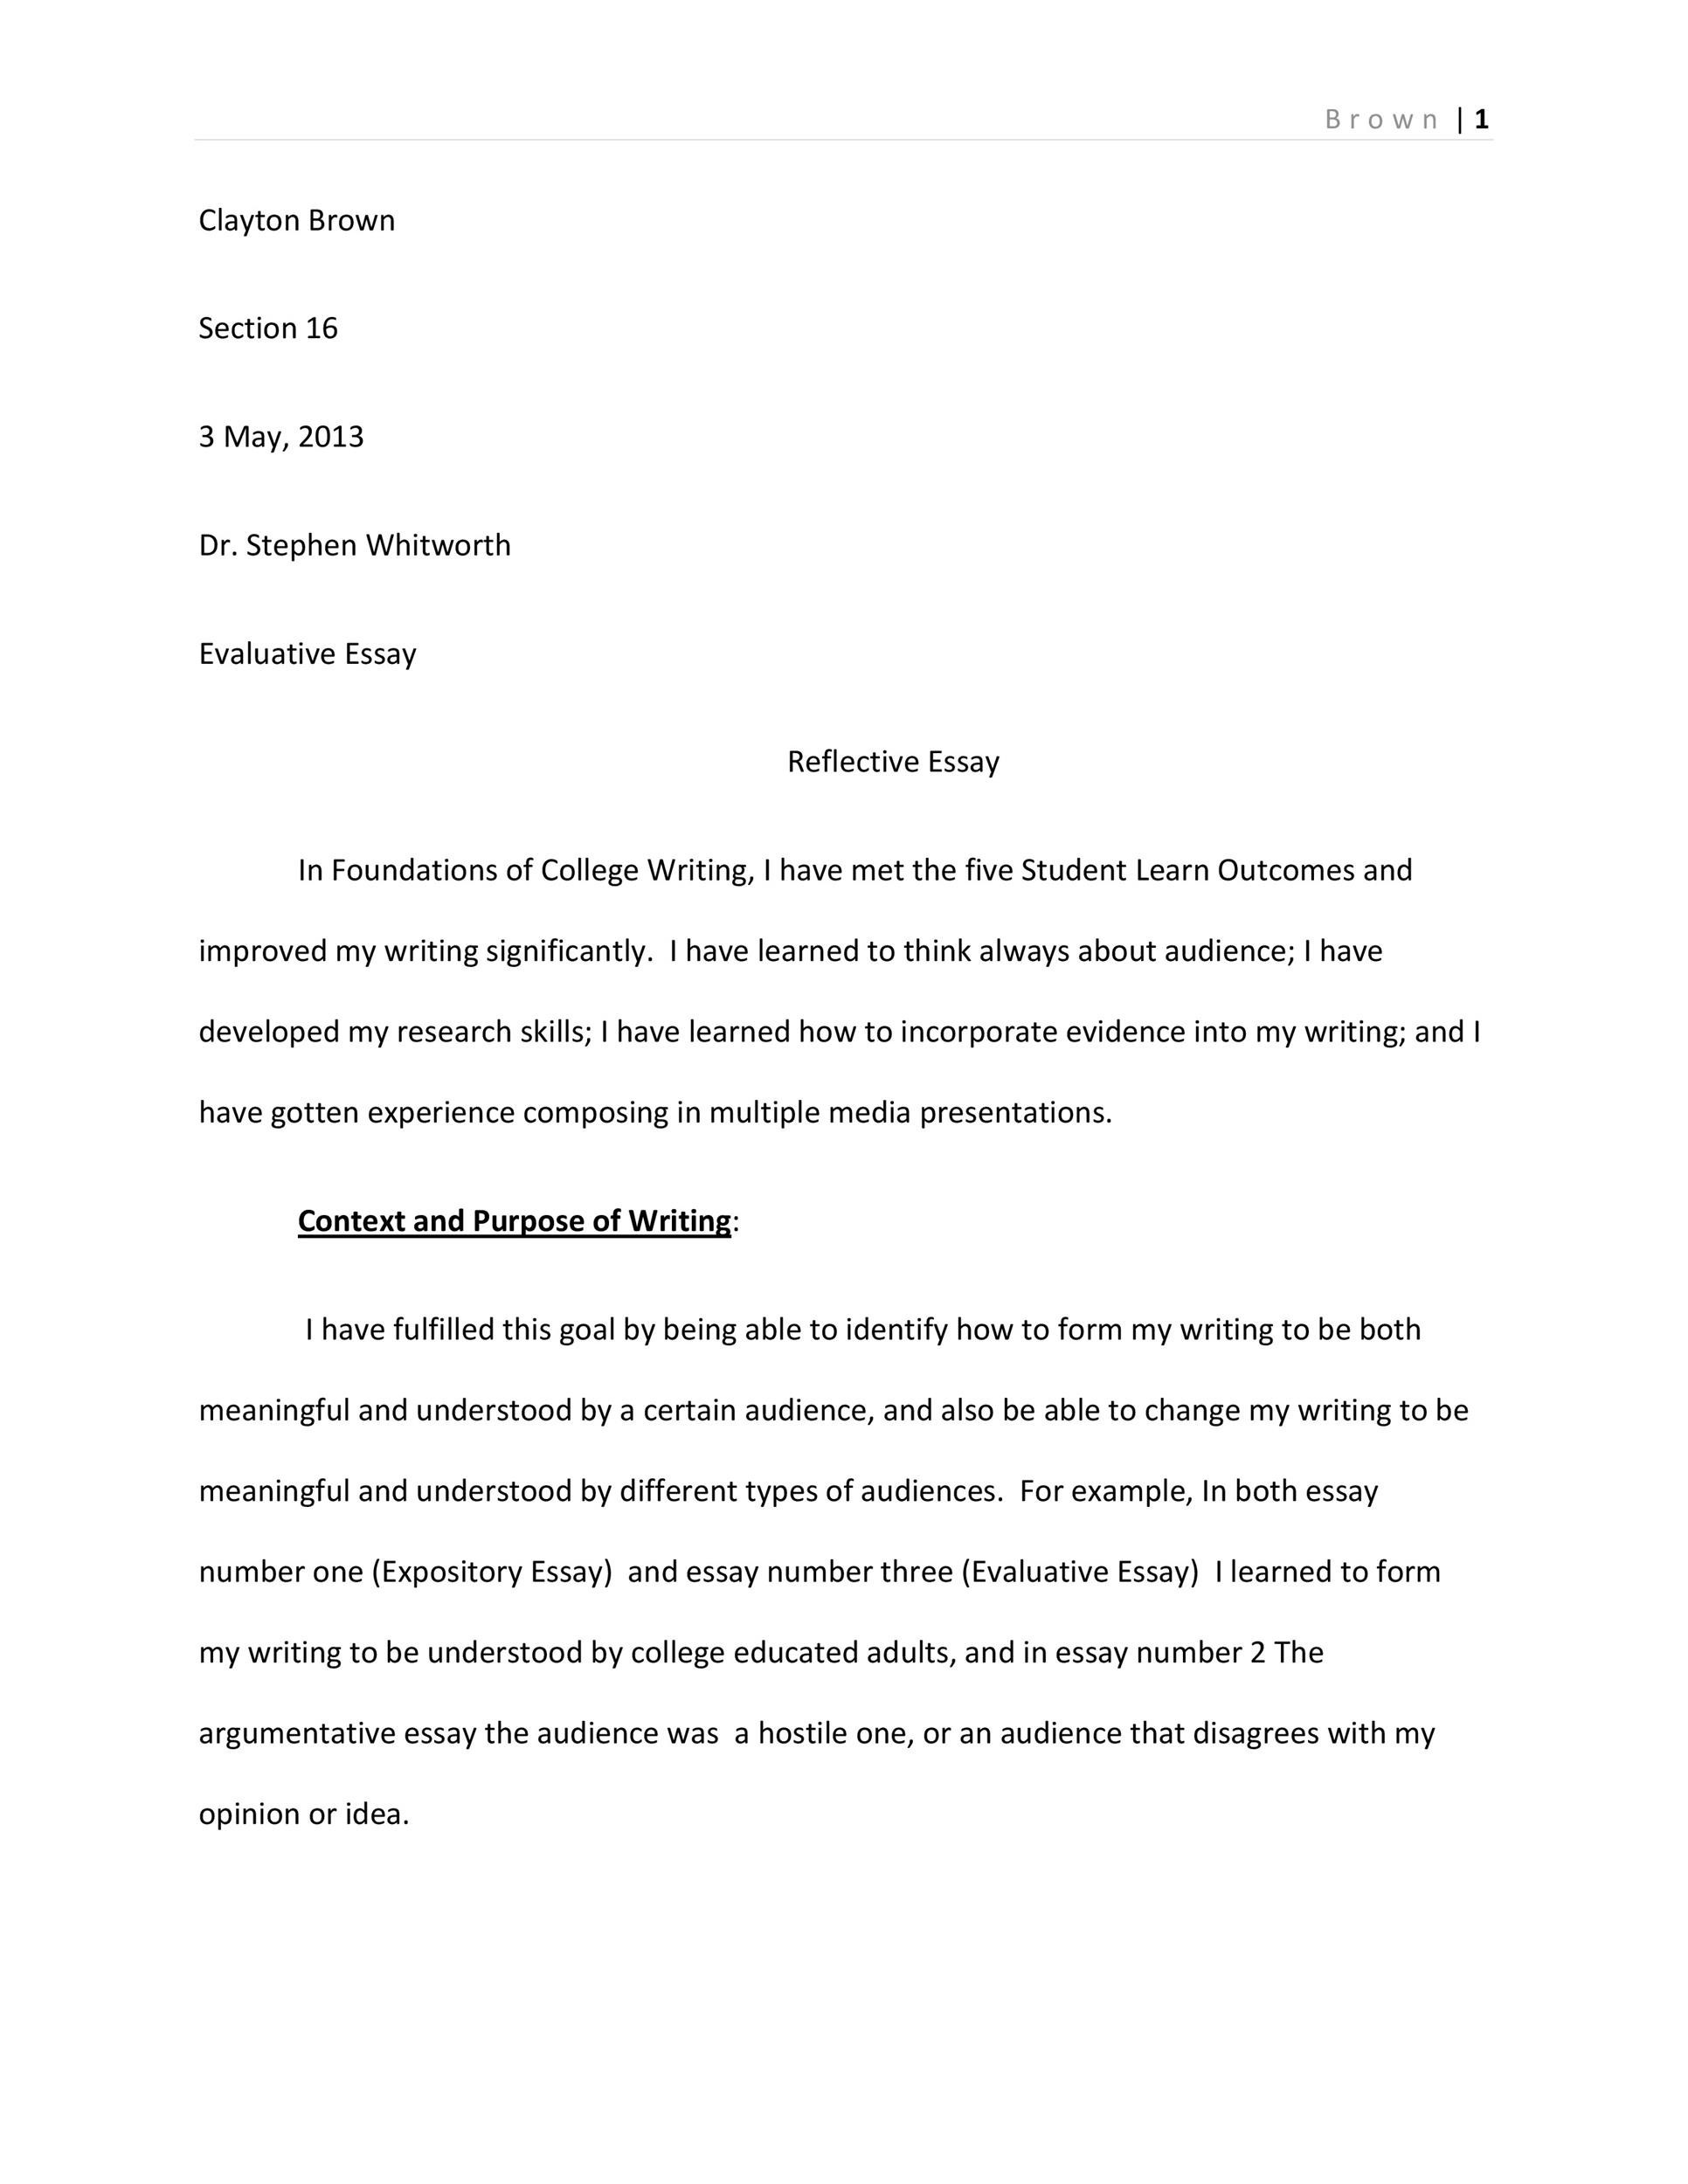 University of michigan essay example